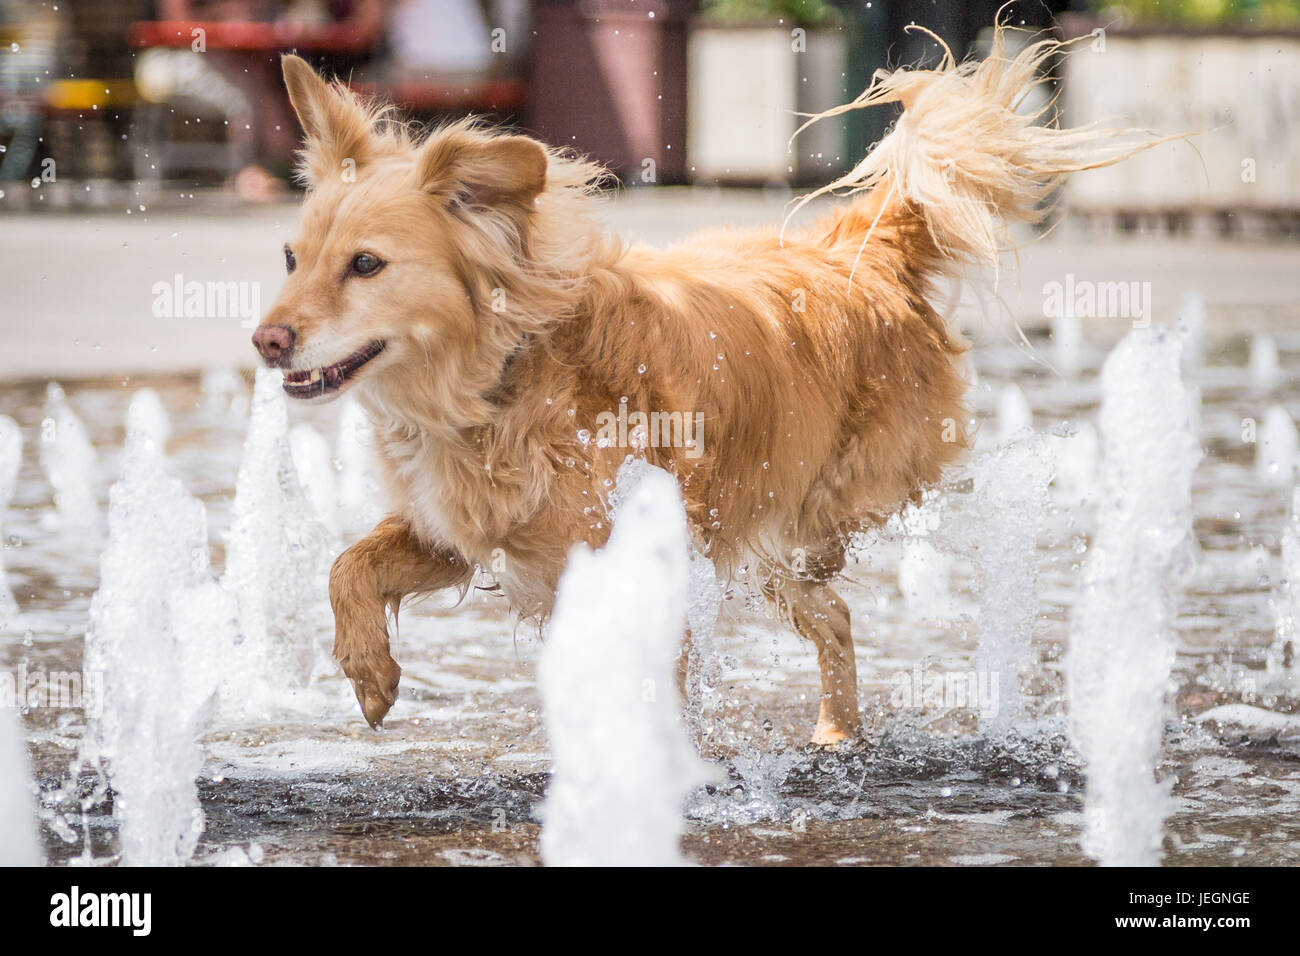 London, UK. 23rd June, 2017. UK Weather: Roxie the dog enjoys the Granary Square fountains near King's Cross on - Stock Image